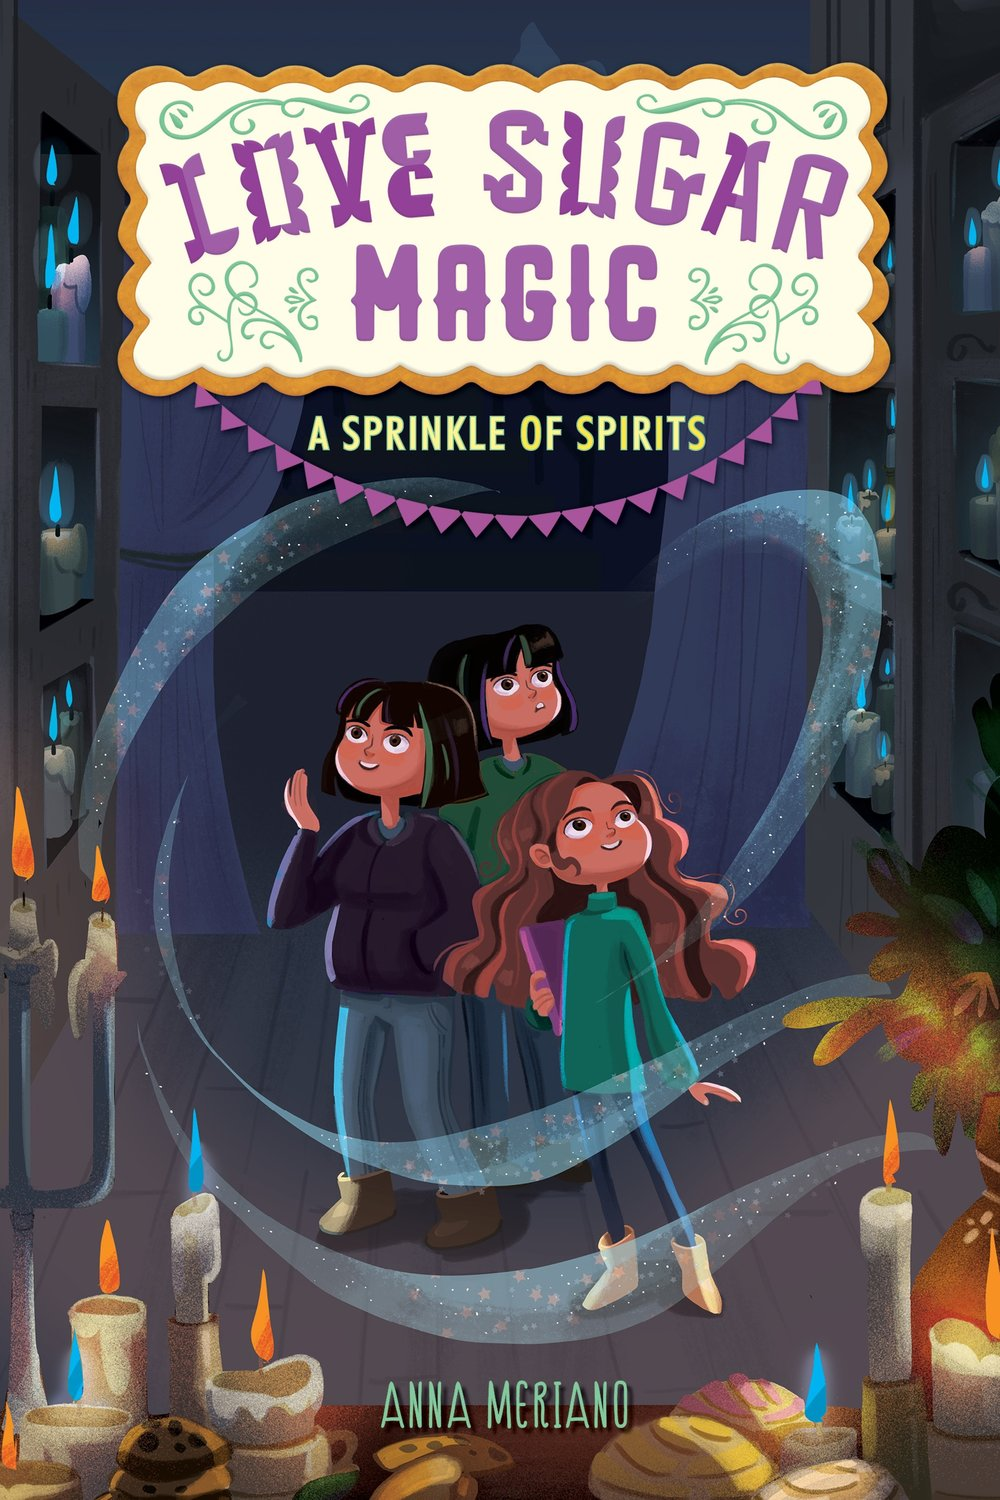 Cover of Love Sugar Magic: A Sprinkling of Spirits by Anna Meriano